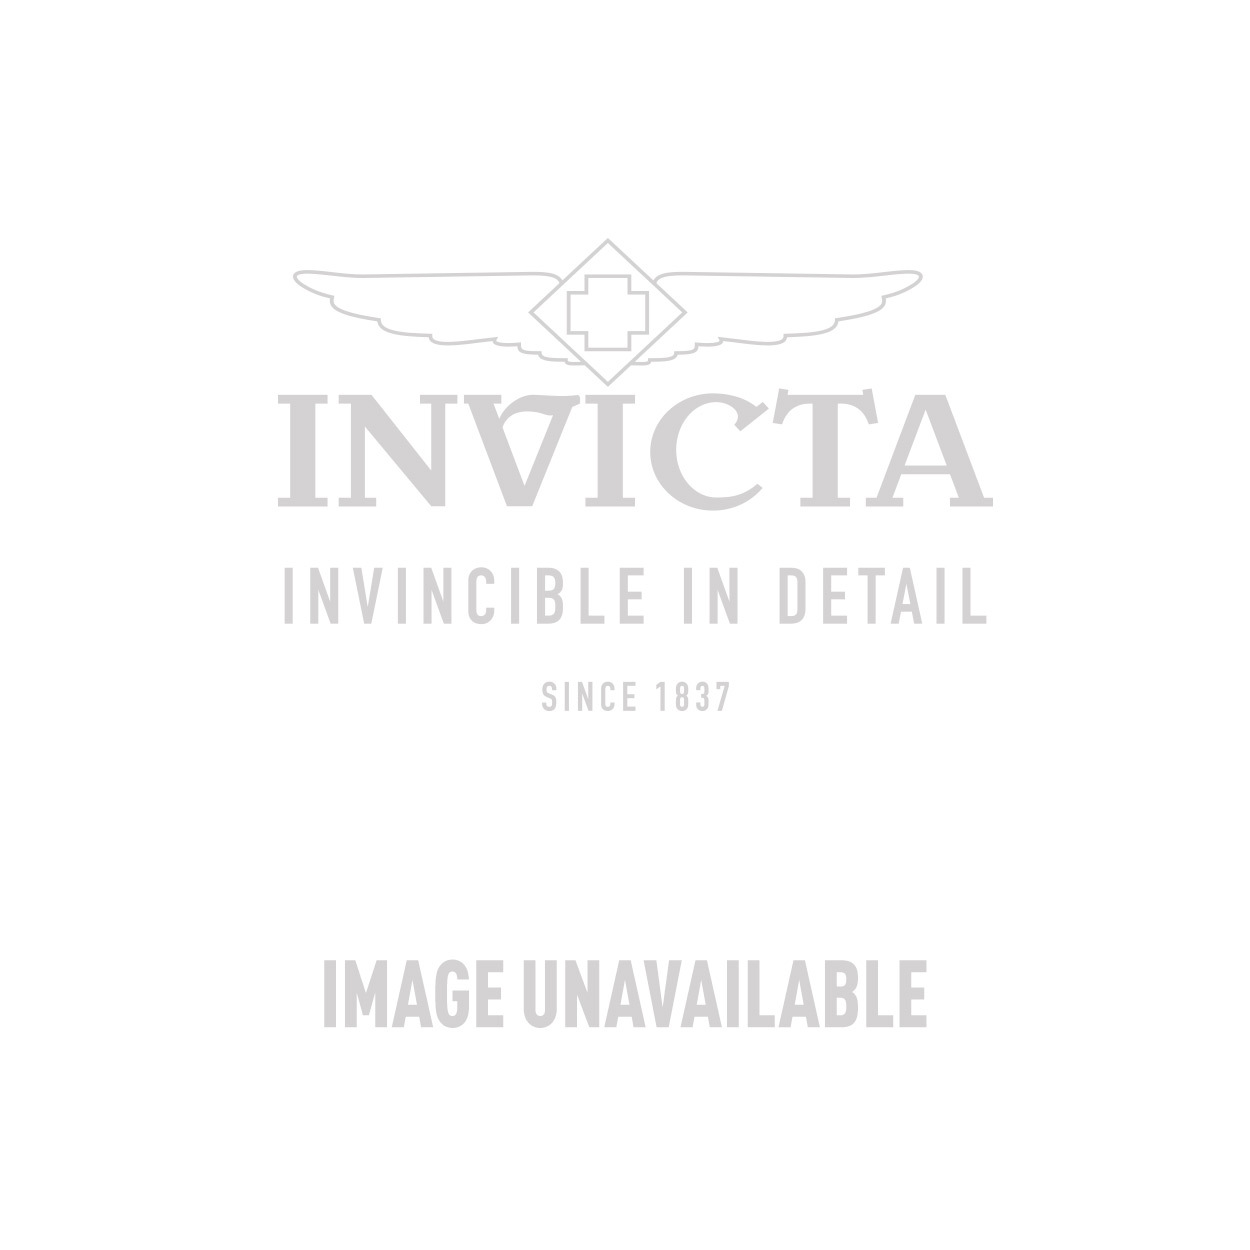 Invicta Reserve Swiss Made Quartz Watch - Gunmetal, Stainless Steel case Stainless Steel band - Model 10591